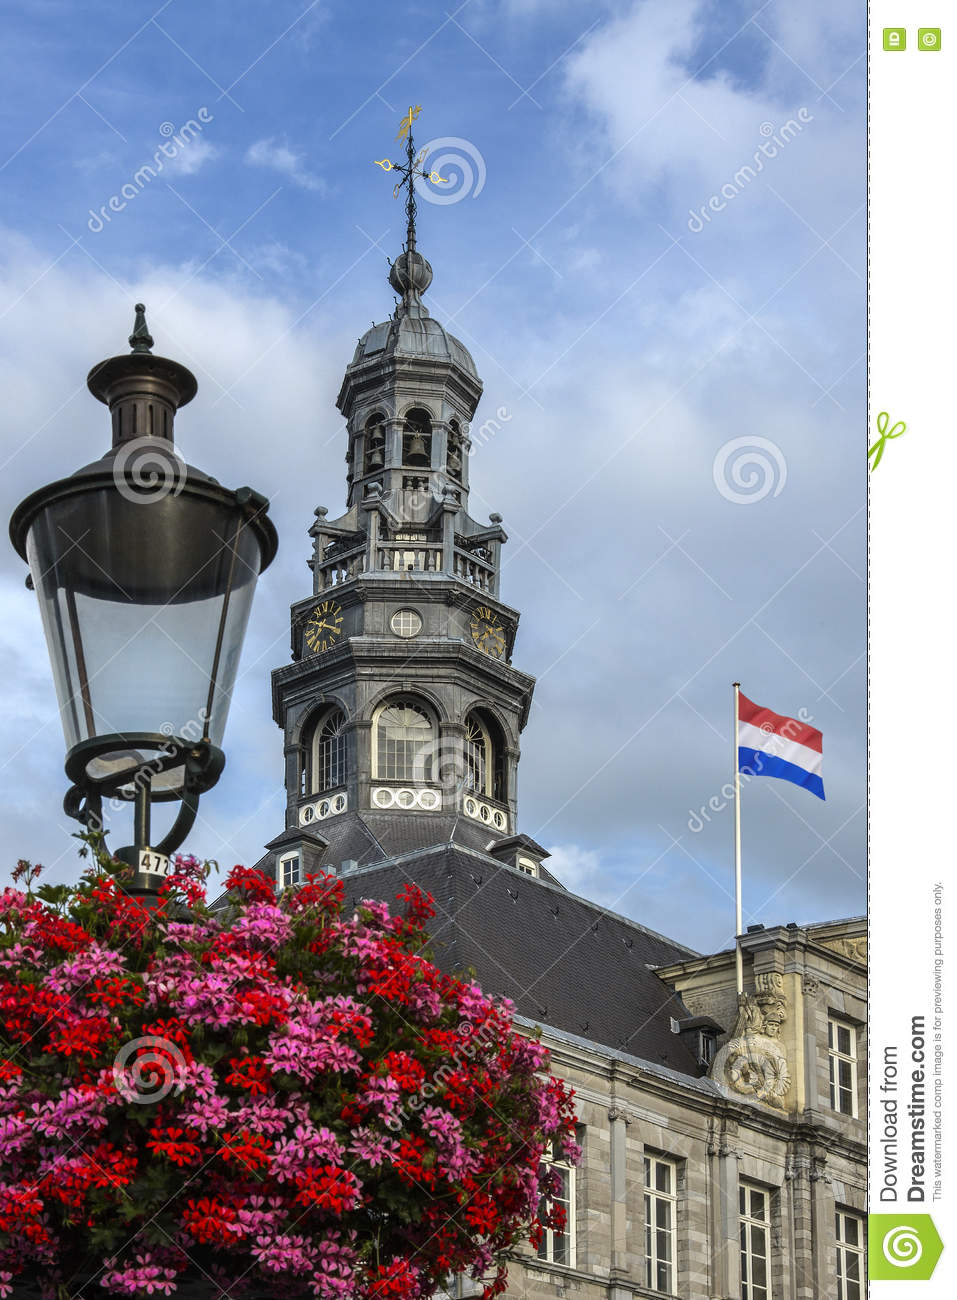 Maastricht - Limbourg - les Pays-Bas